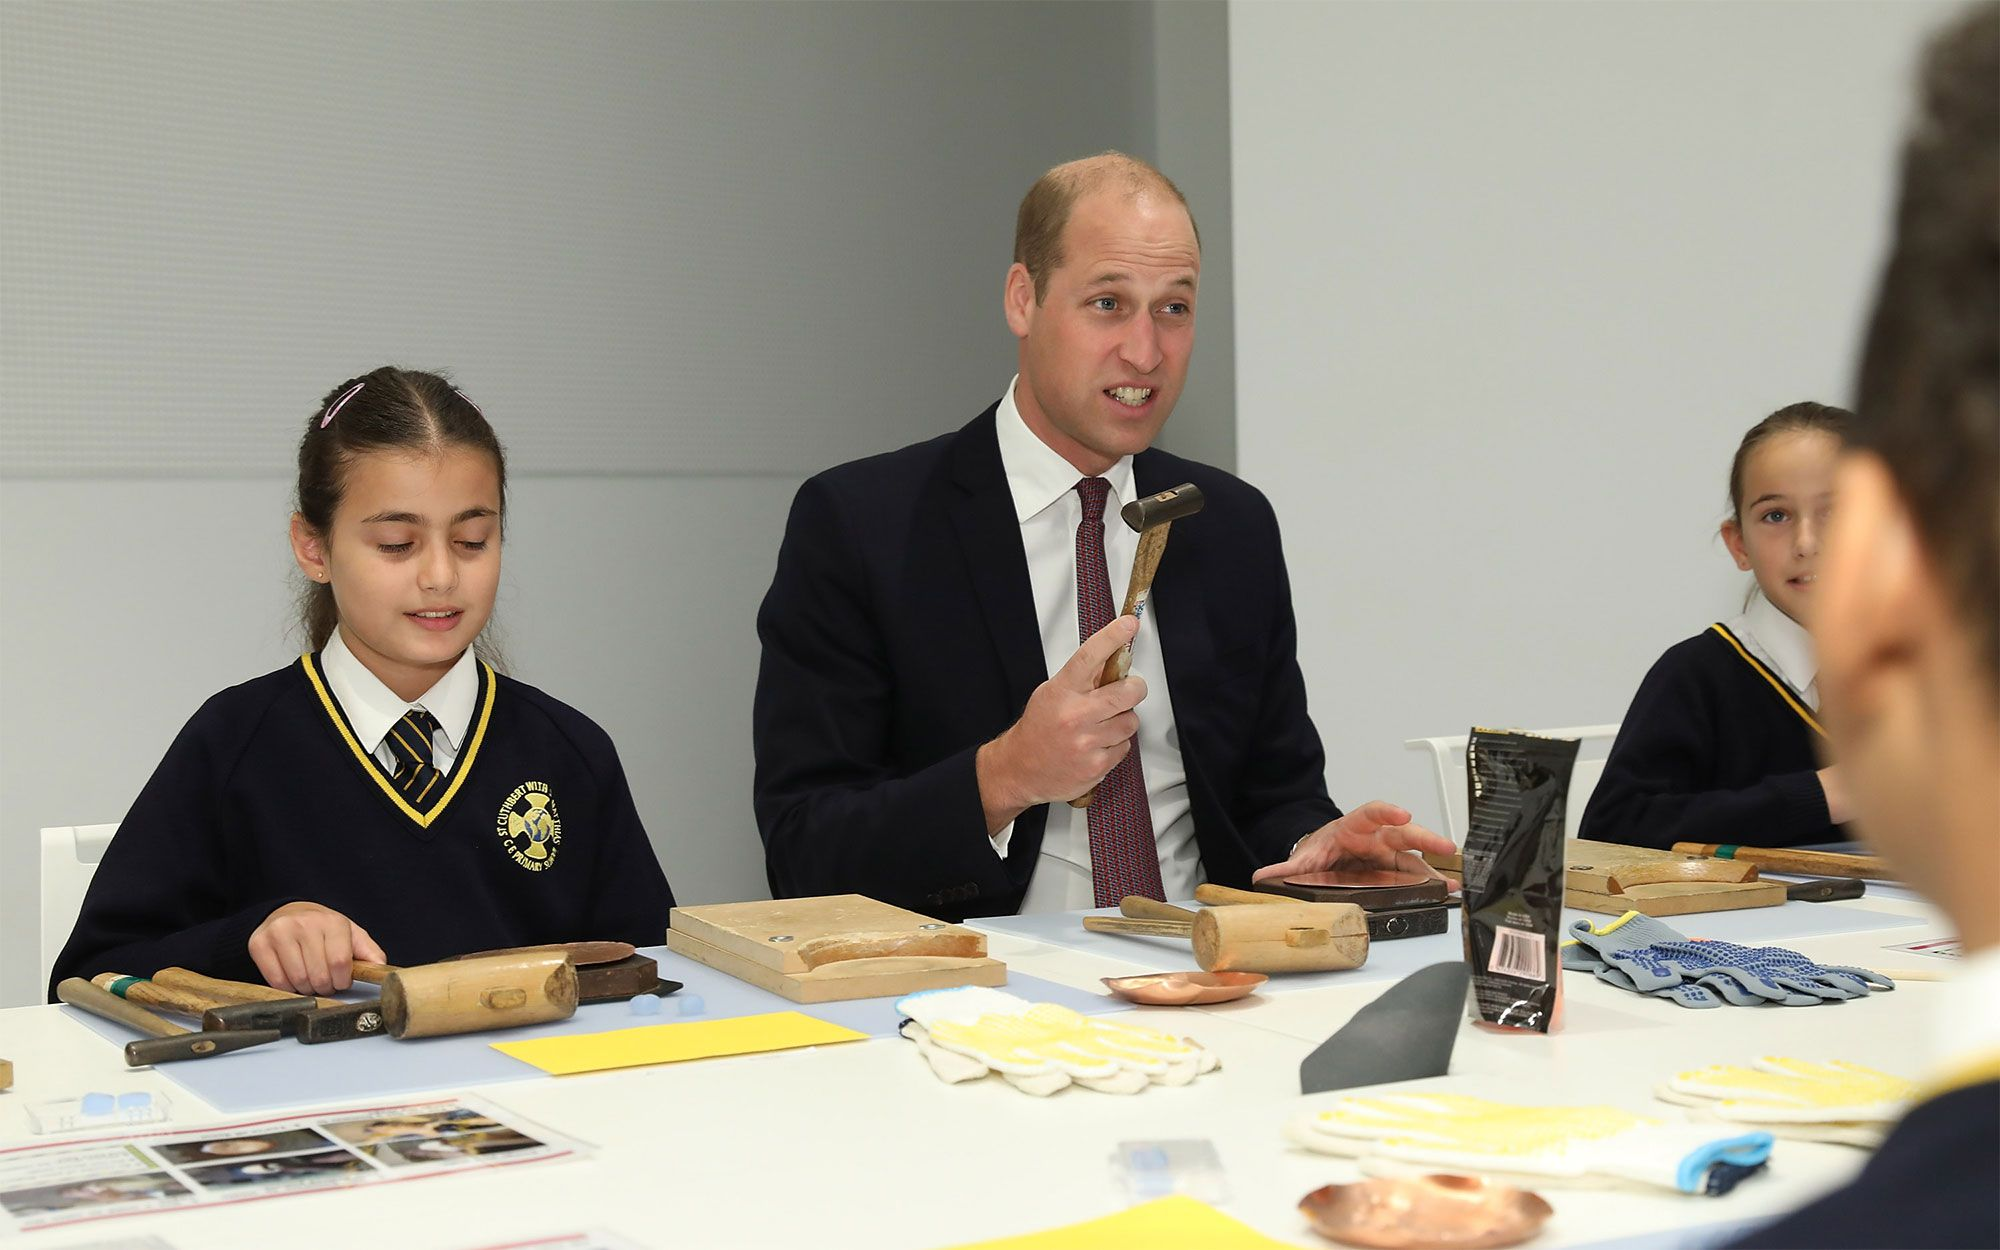 Prince William Makes Rare Blunder While Opening Japanese